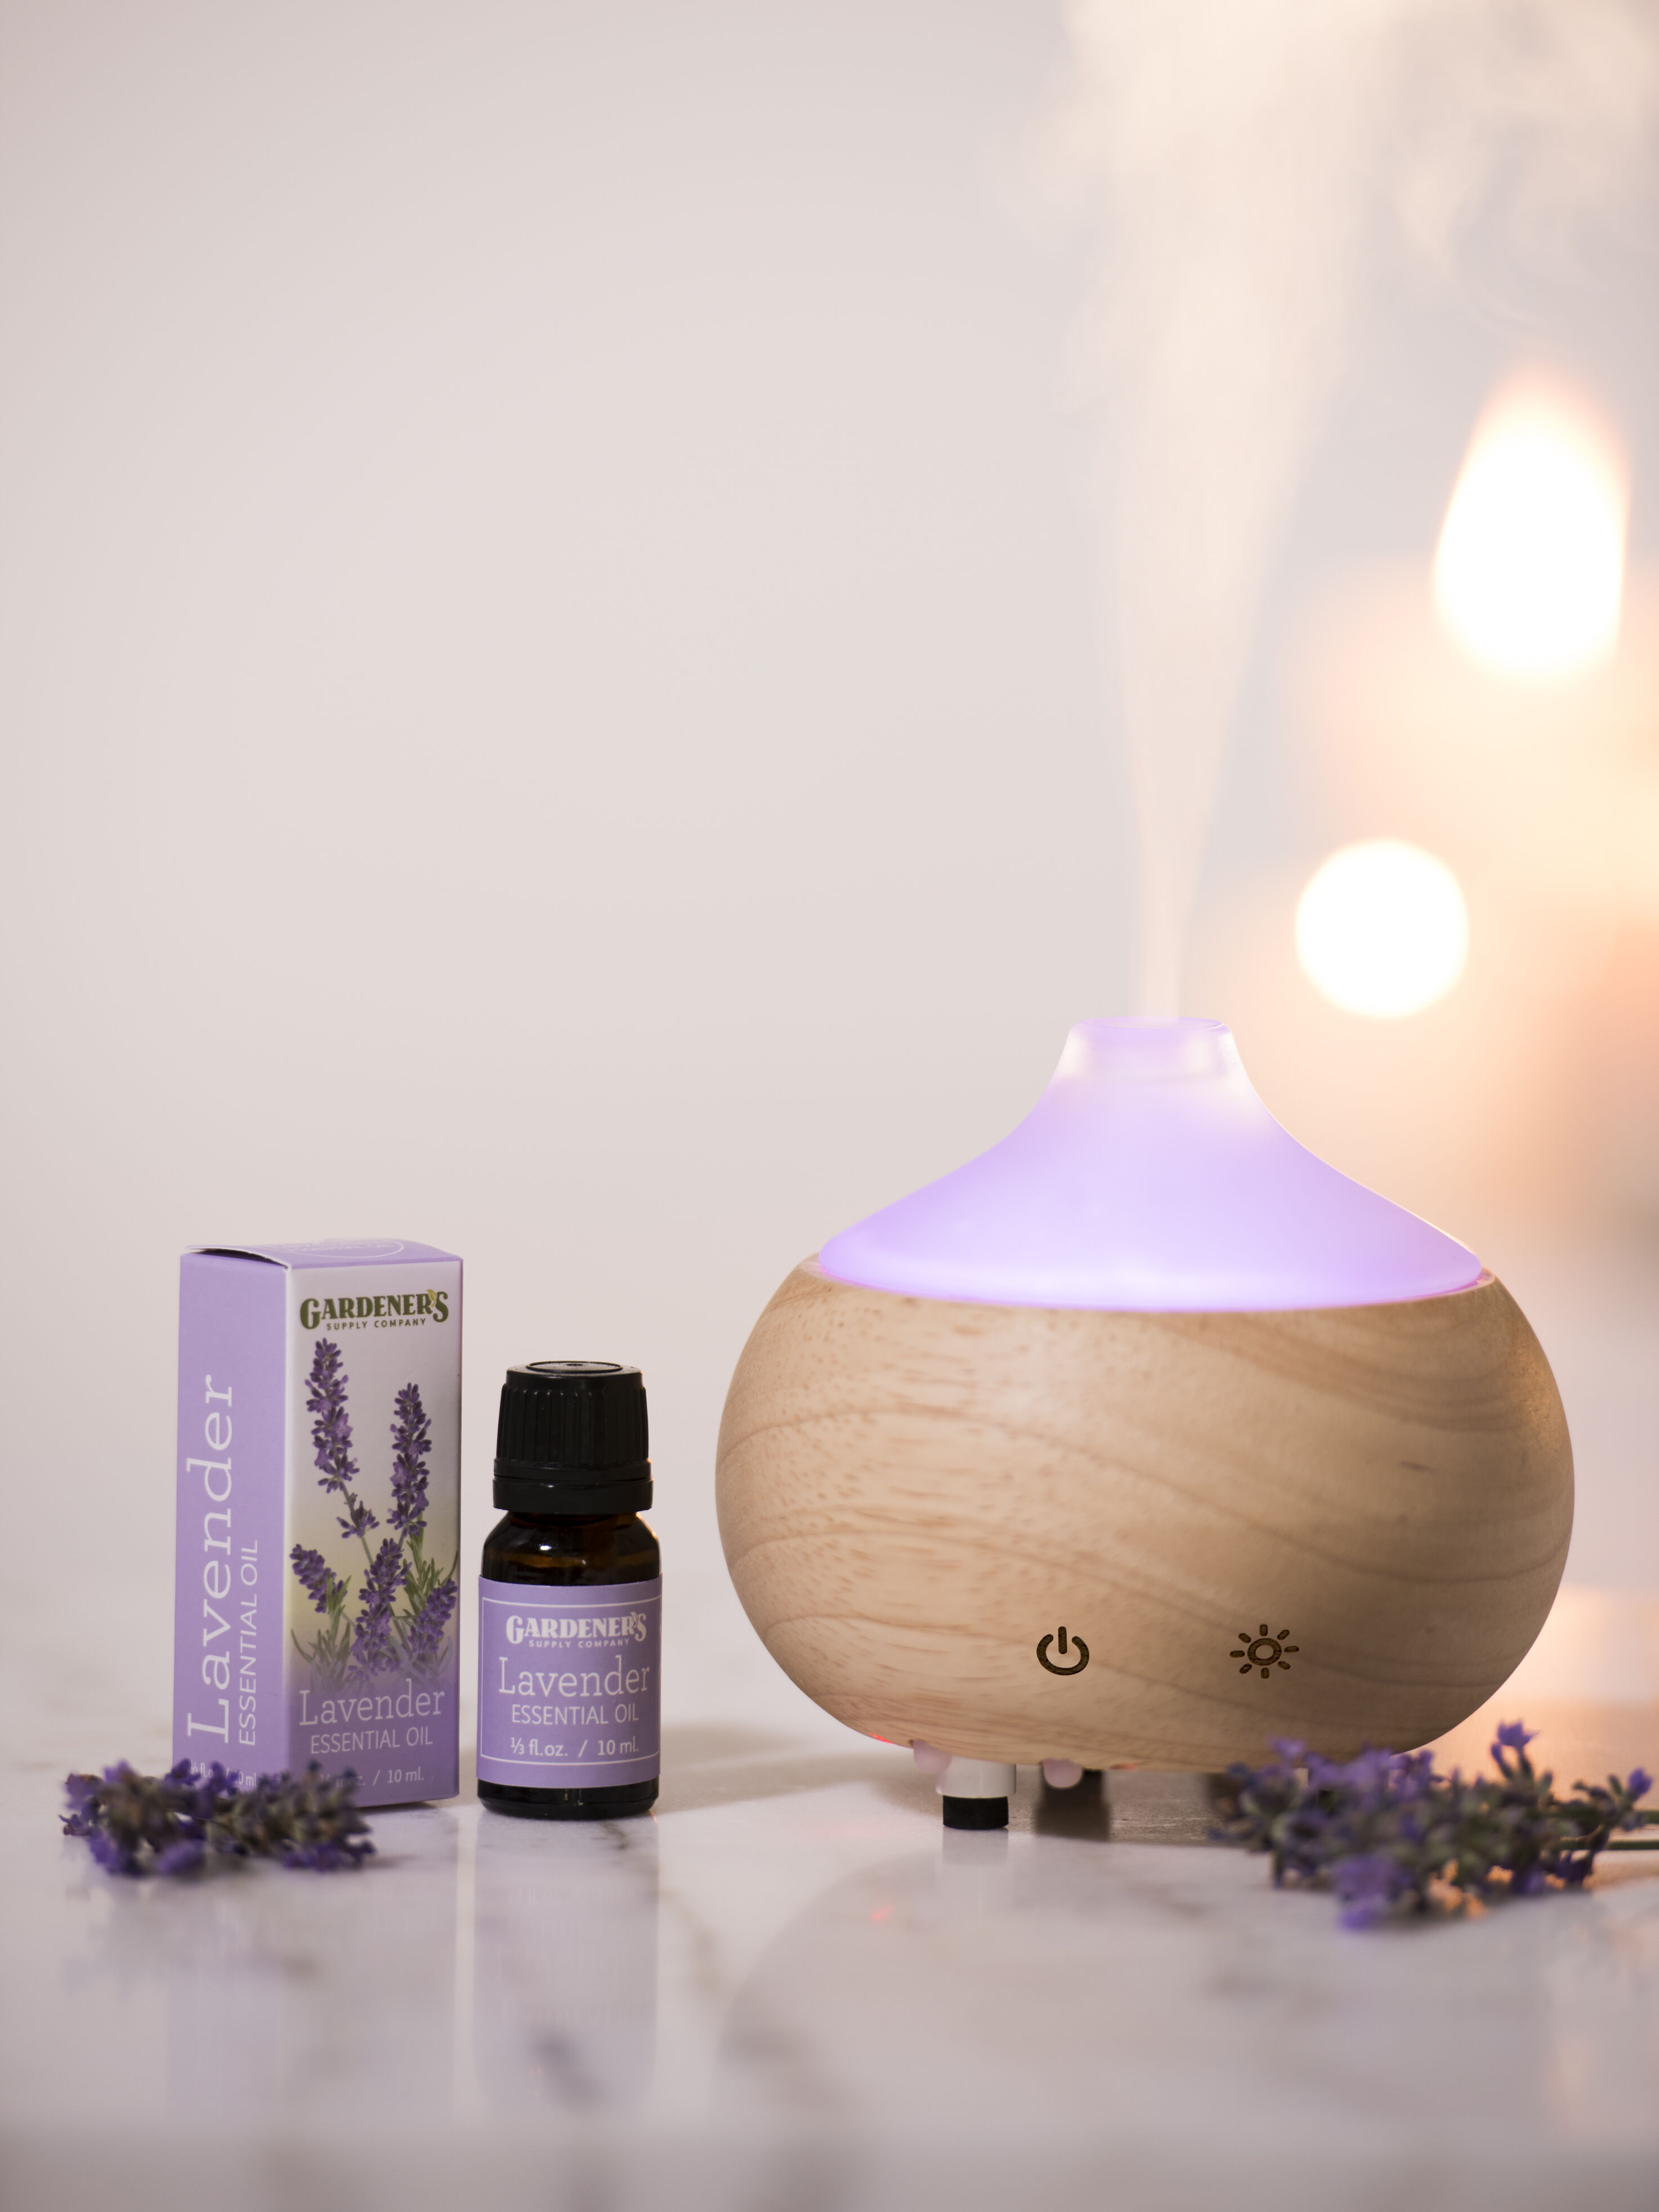 #915D3A Aromatherapy Diffuser: Art Glass Diffuser Gardener's Supply Most Effective 1175 Aromatherapy Diffuser Set pictures with 2947x3929 px on helpvideos.info - Air Conditioners, Air Coolers and more